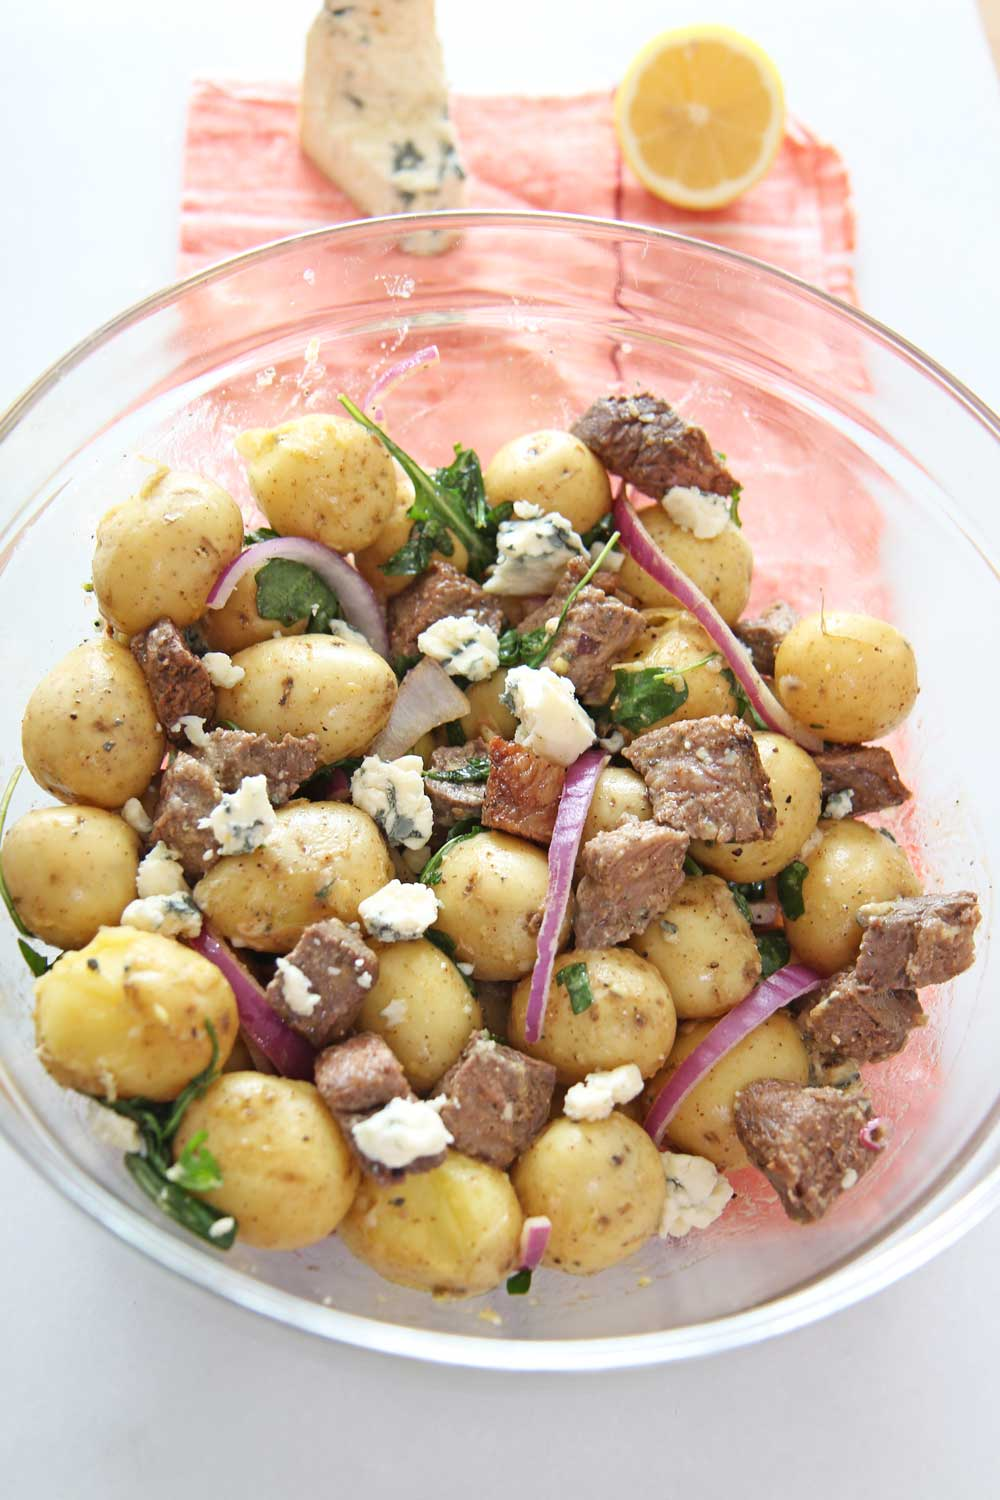 Steakhouse Steak and Potato Salad. This is a 20 minute recipe for busy weeknightt dinner. NY strip steak and Yukon gold potatoes mix with blue cheese and peppery arugula! Perfect next day leftovers. #potatosalad #leftovers